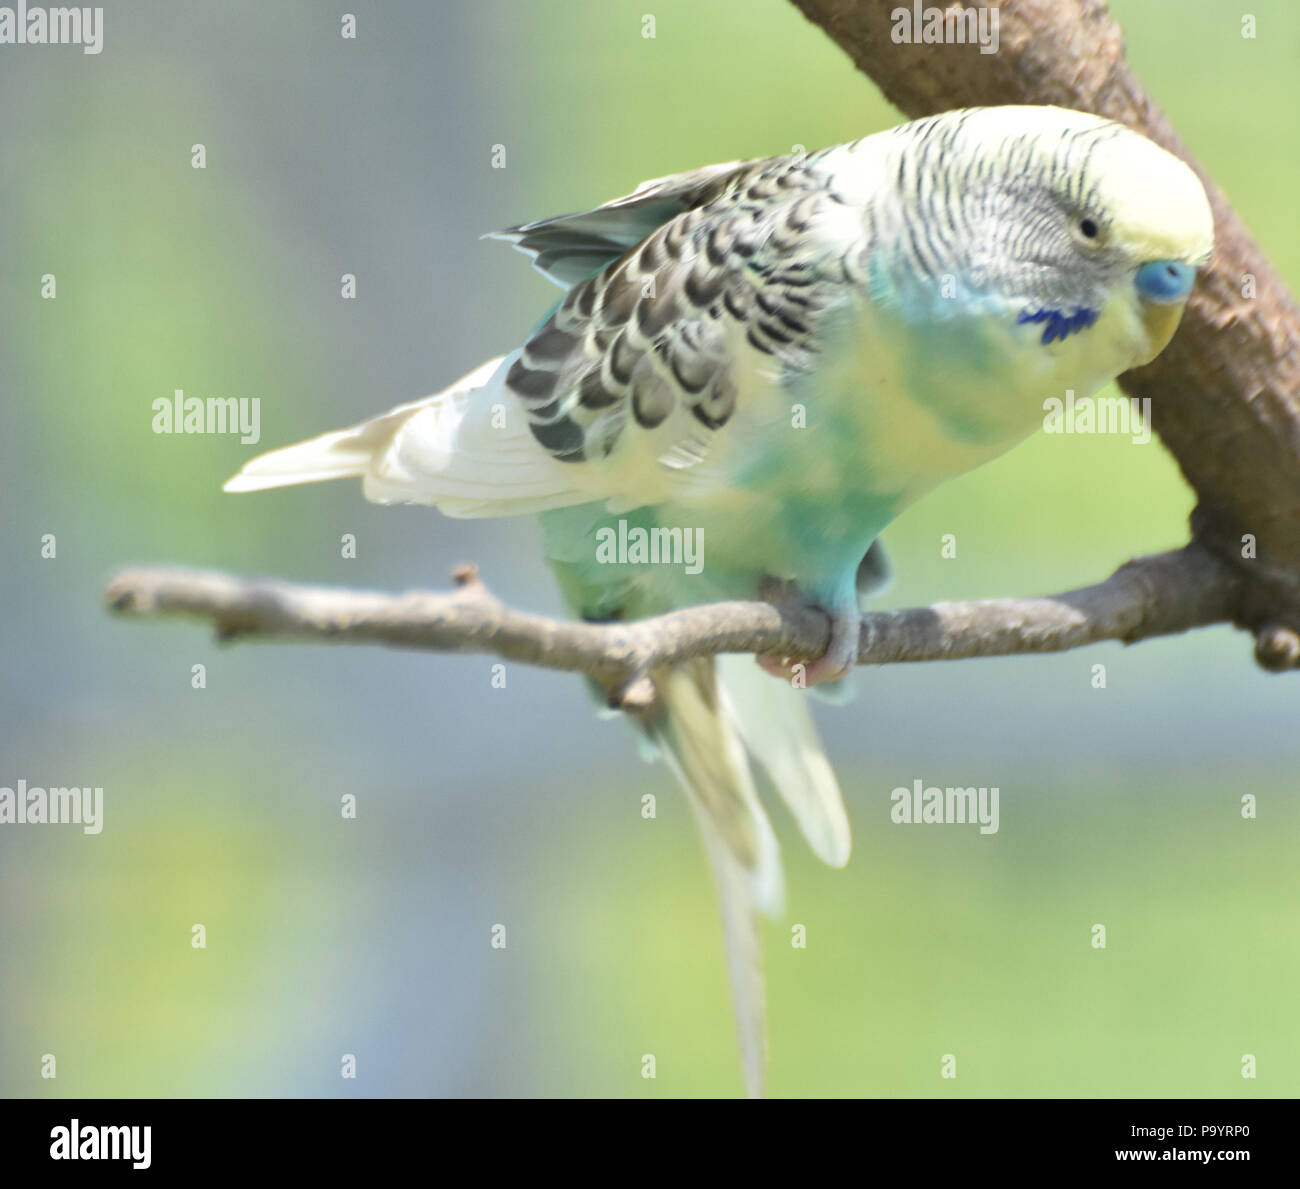 Budgie with ruffled feathers and wings partially extended. - Stock Image